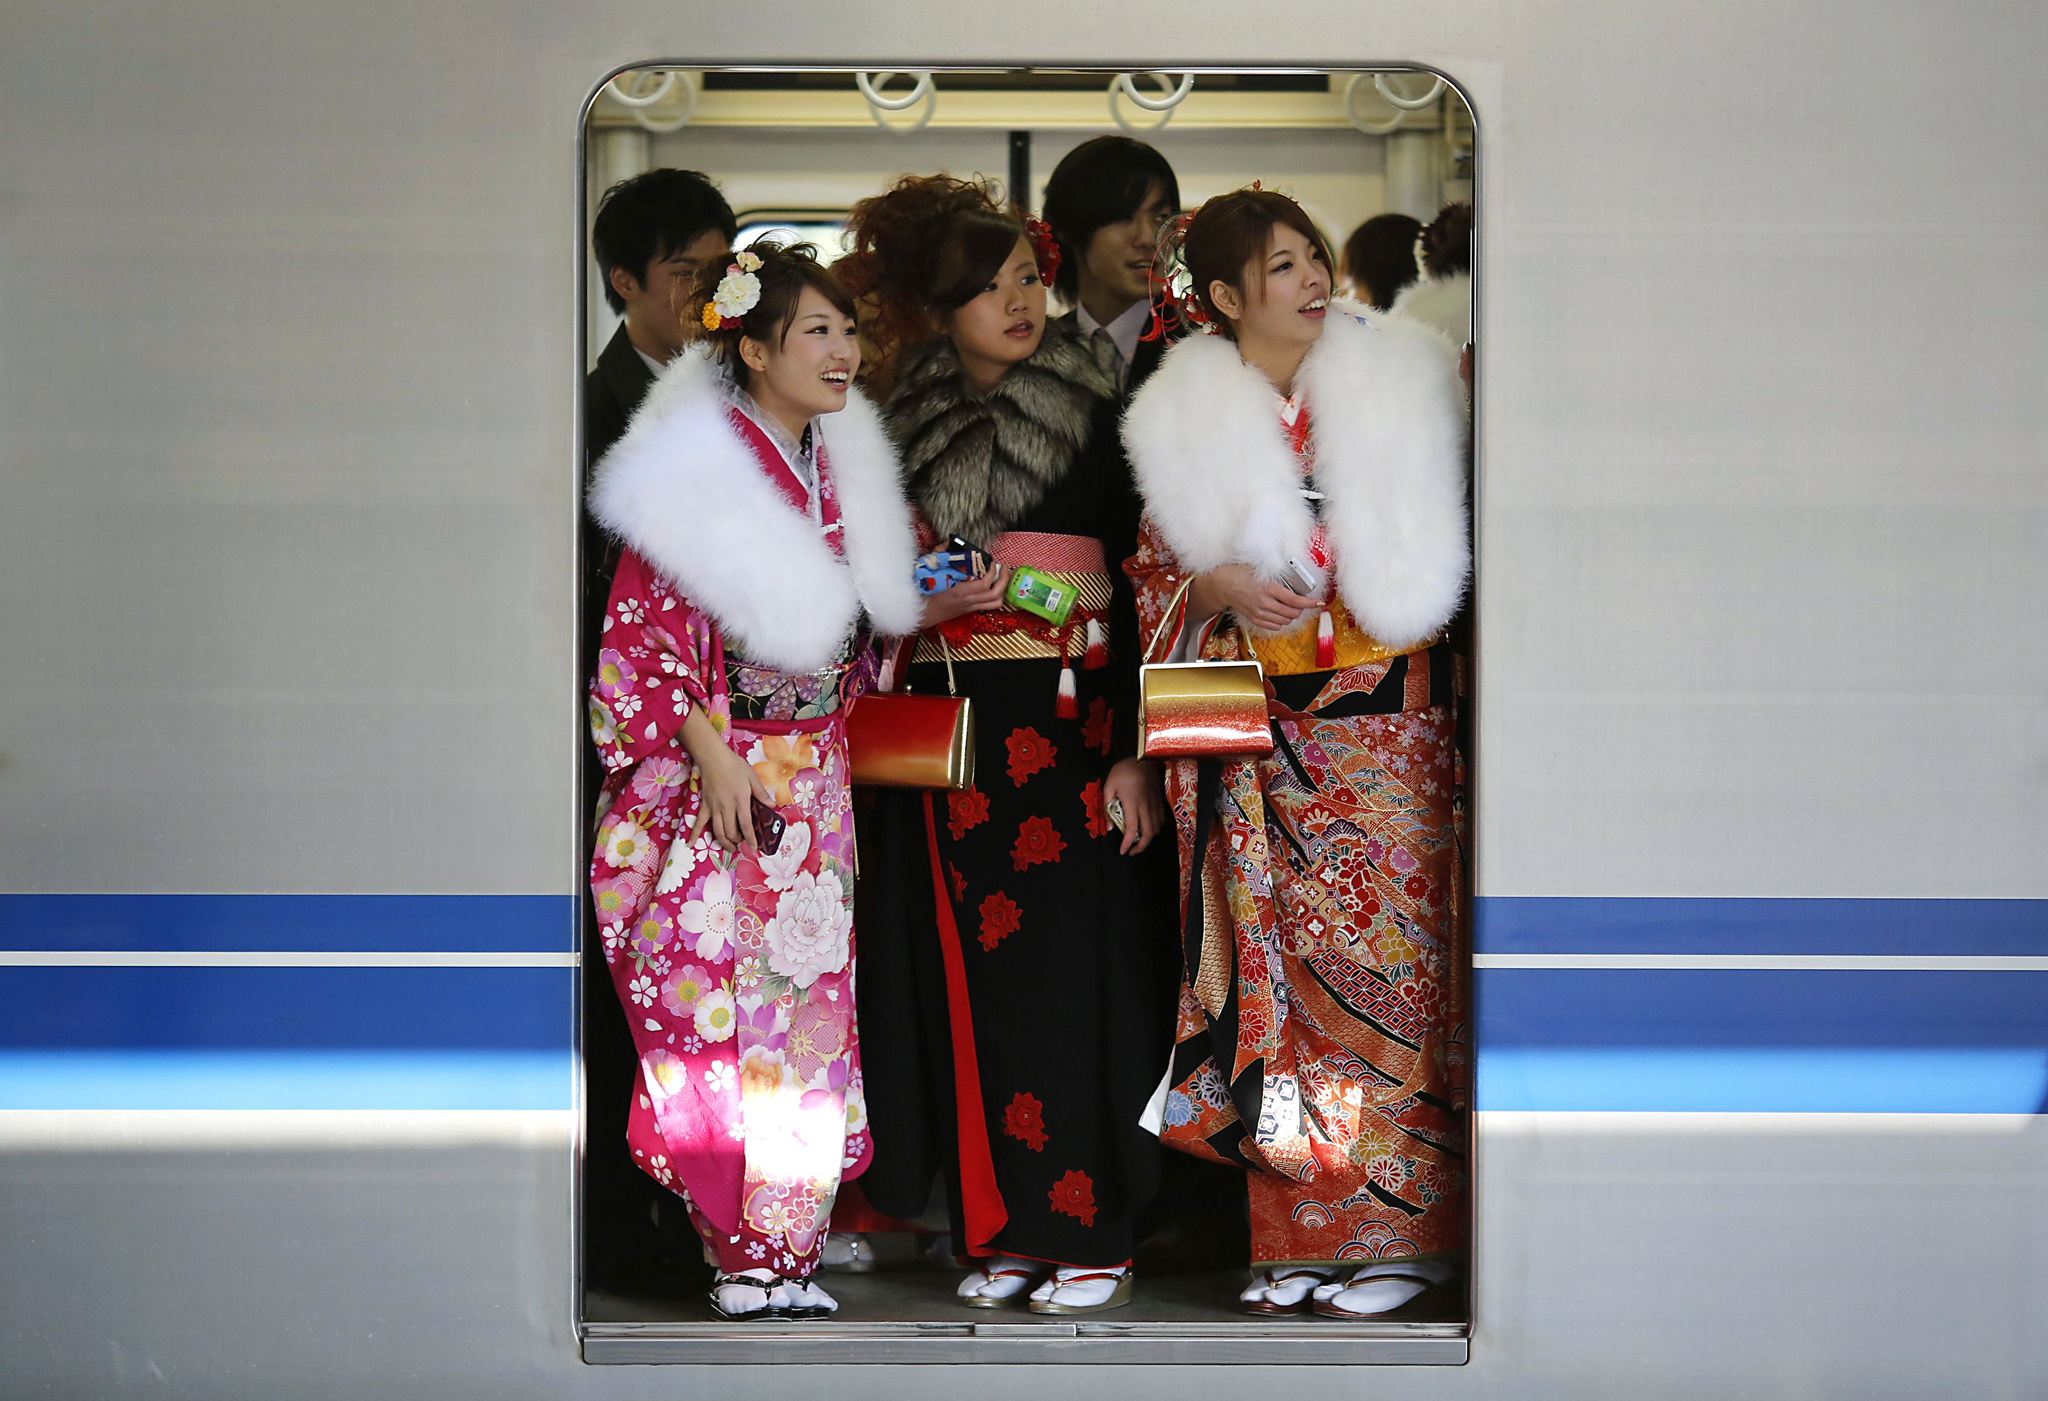 Japanese women in kimonos ride a train after a ceremony celebrating Coming of Age Day at an amusement park in Tokyo...Japanese women in kimonos ride a train after a ceremony celebrating Coming of Age Day at an amusement park in Tokyo January 13, 2014. According to a government announcement, about 1,210,000 men and women who were born in 1993 reached coming of age this year and the number is 10,000 less people than last year. The figure is the smallest number since the government started counting in 1968. REUTERS/Yuya Shino